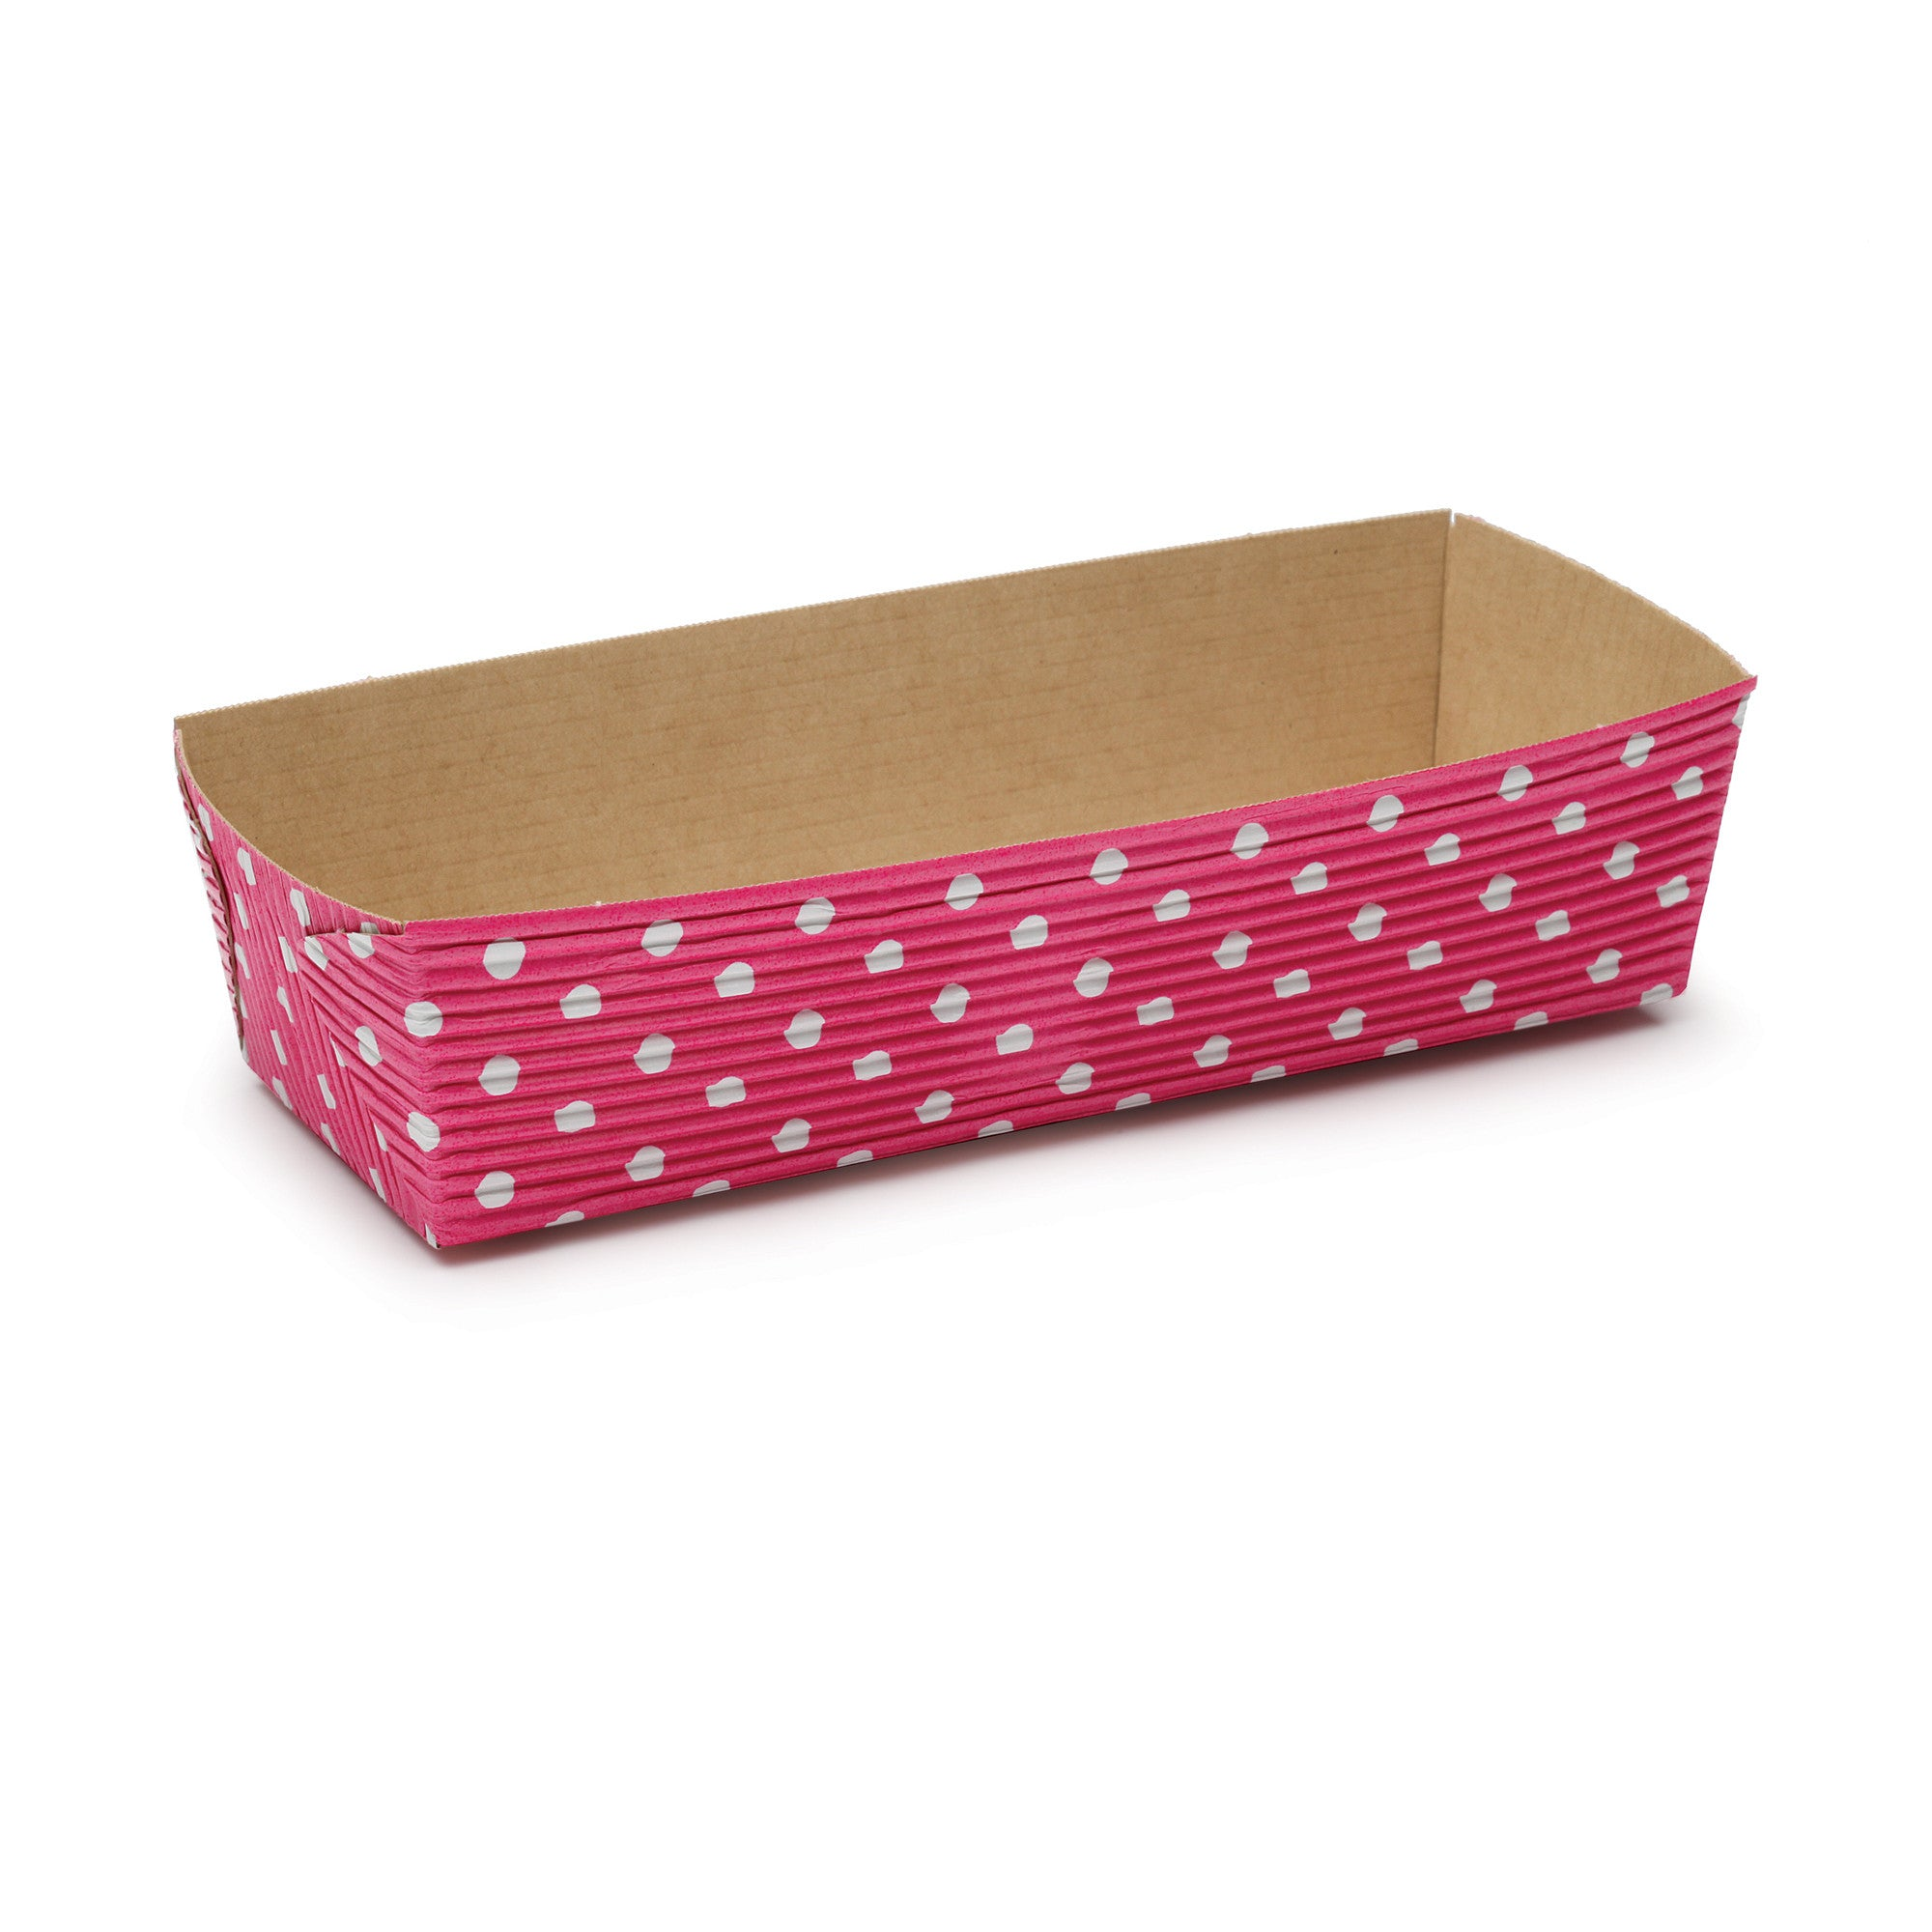 Rectangular Loaf Baking Pans, Pink Dot - Paper Bake Shop